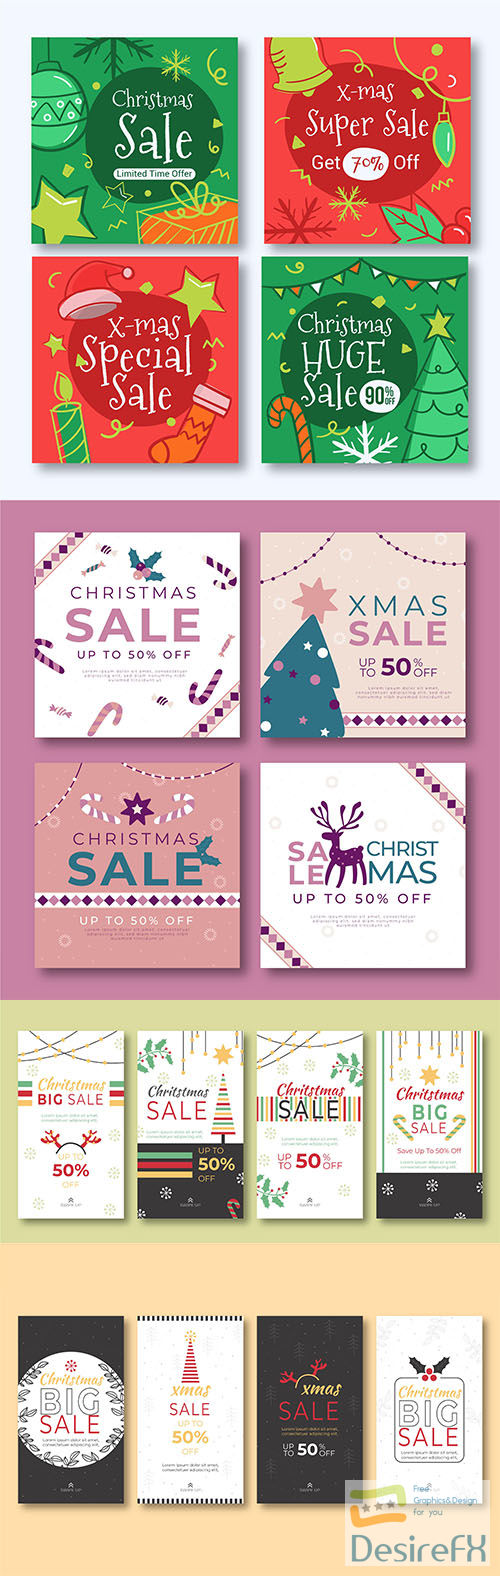 Christmas sale instagram post and stories collection